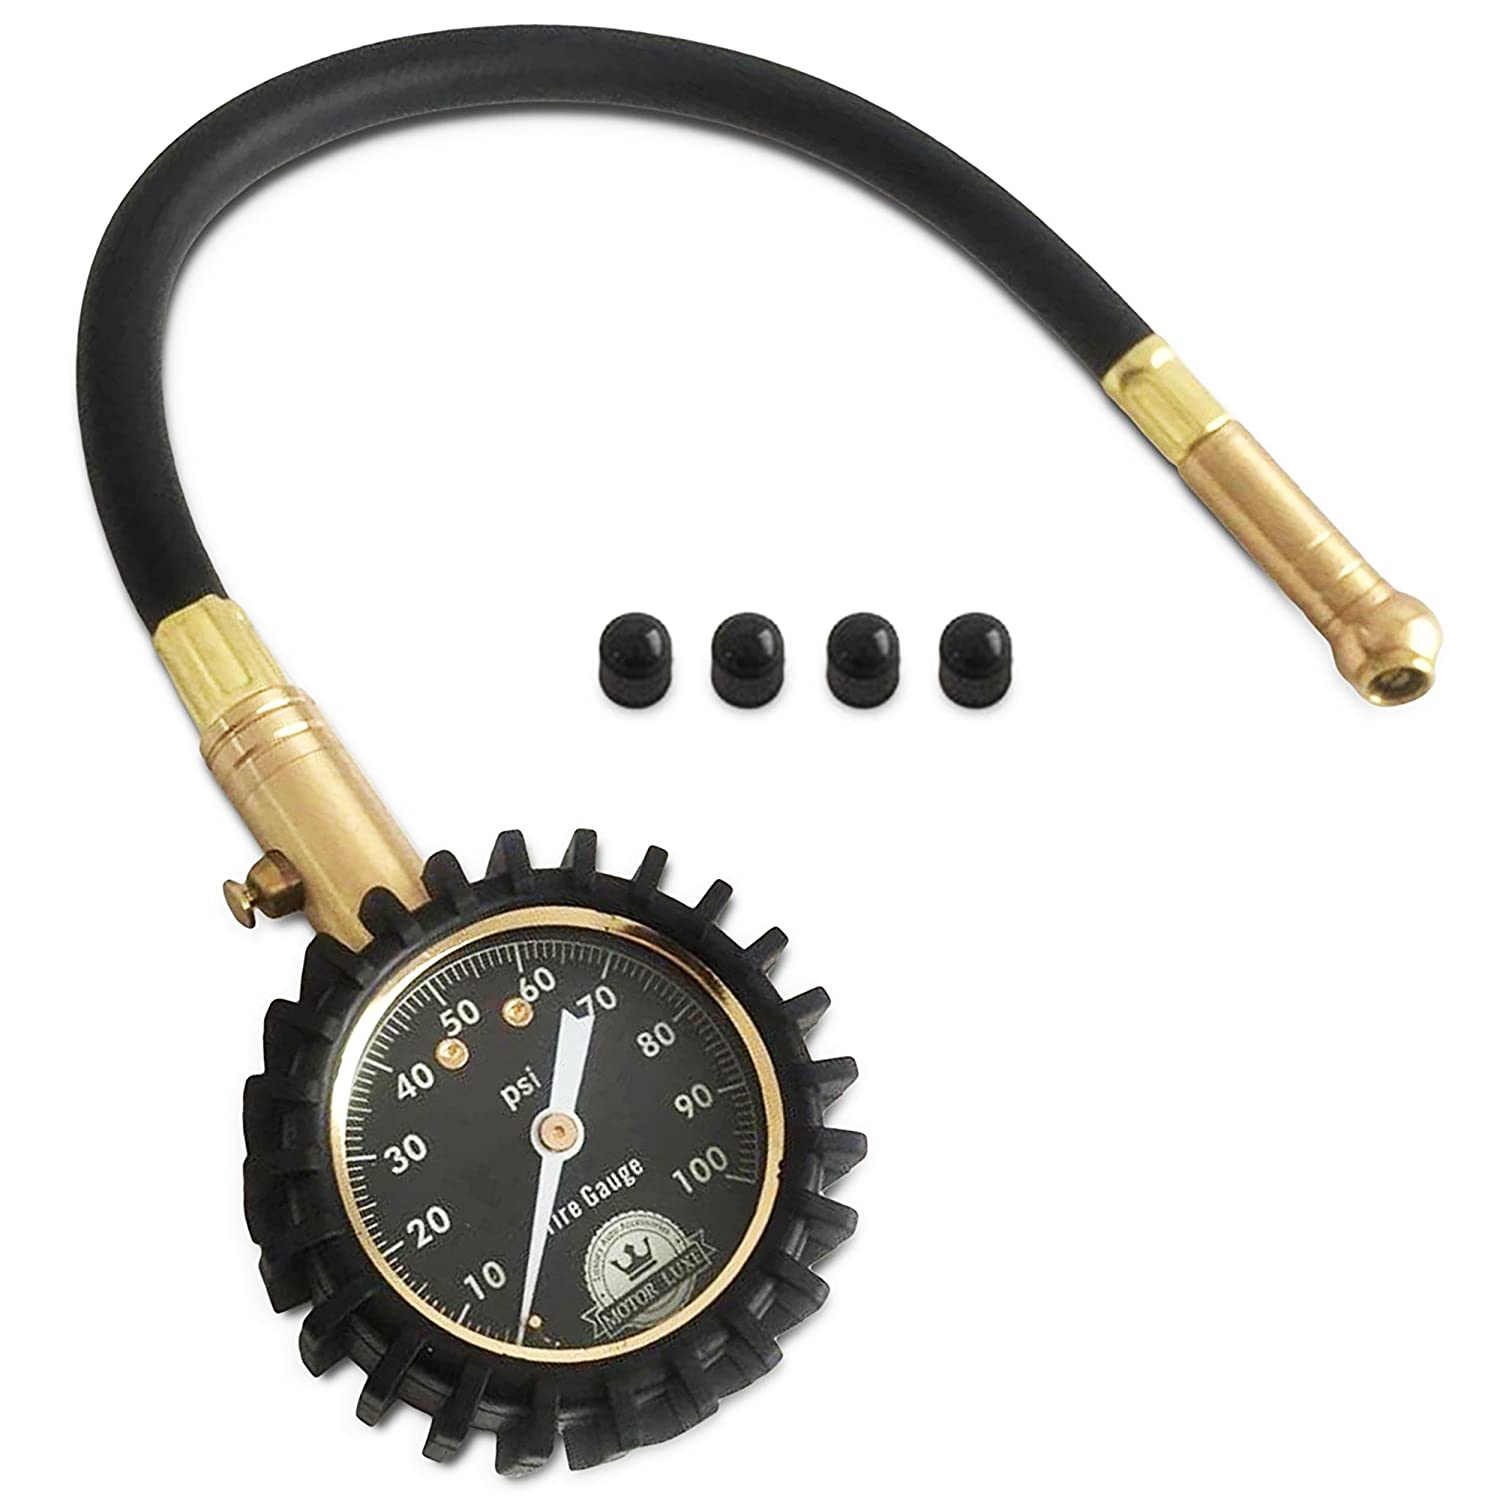 tire pressure gauge. amazon.com: motor luxe tire pressure gauge 100 psi - accurate heavy duty air for your car truck and motorcycle 4 free valve caps: